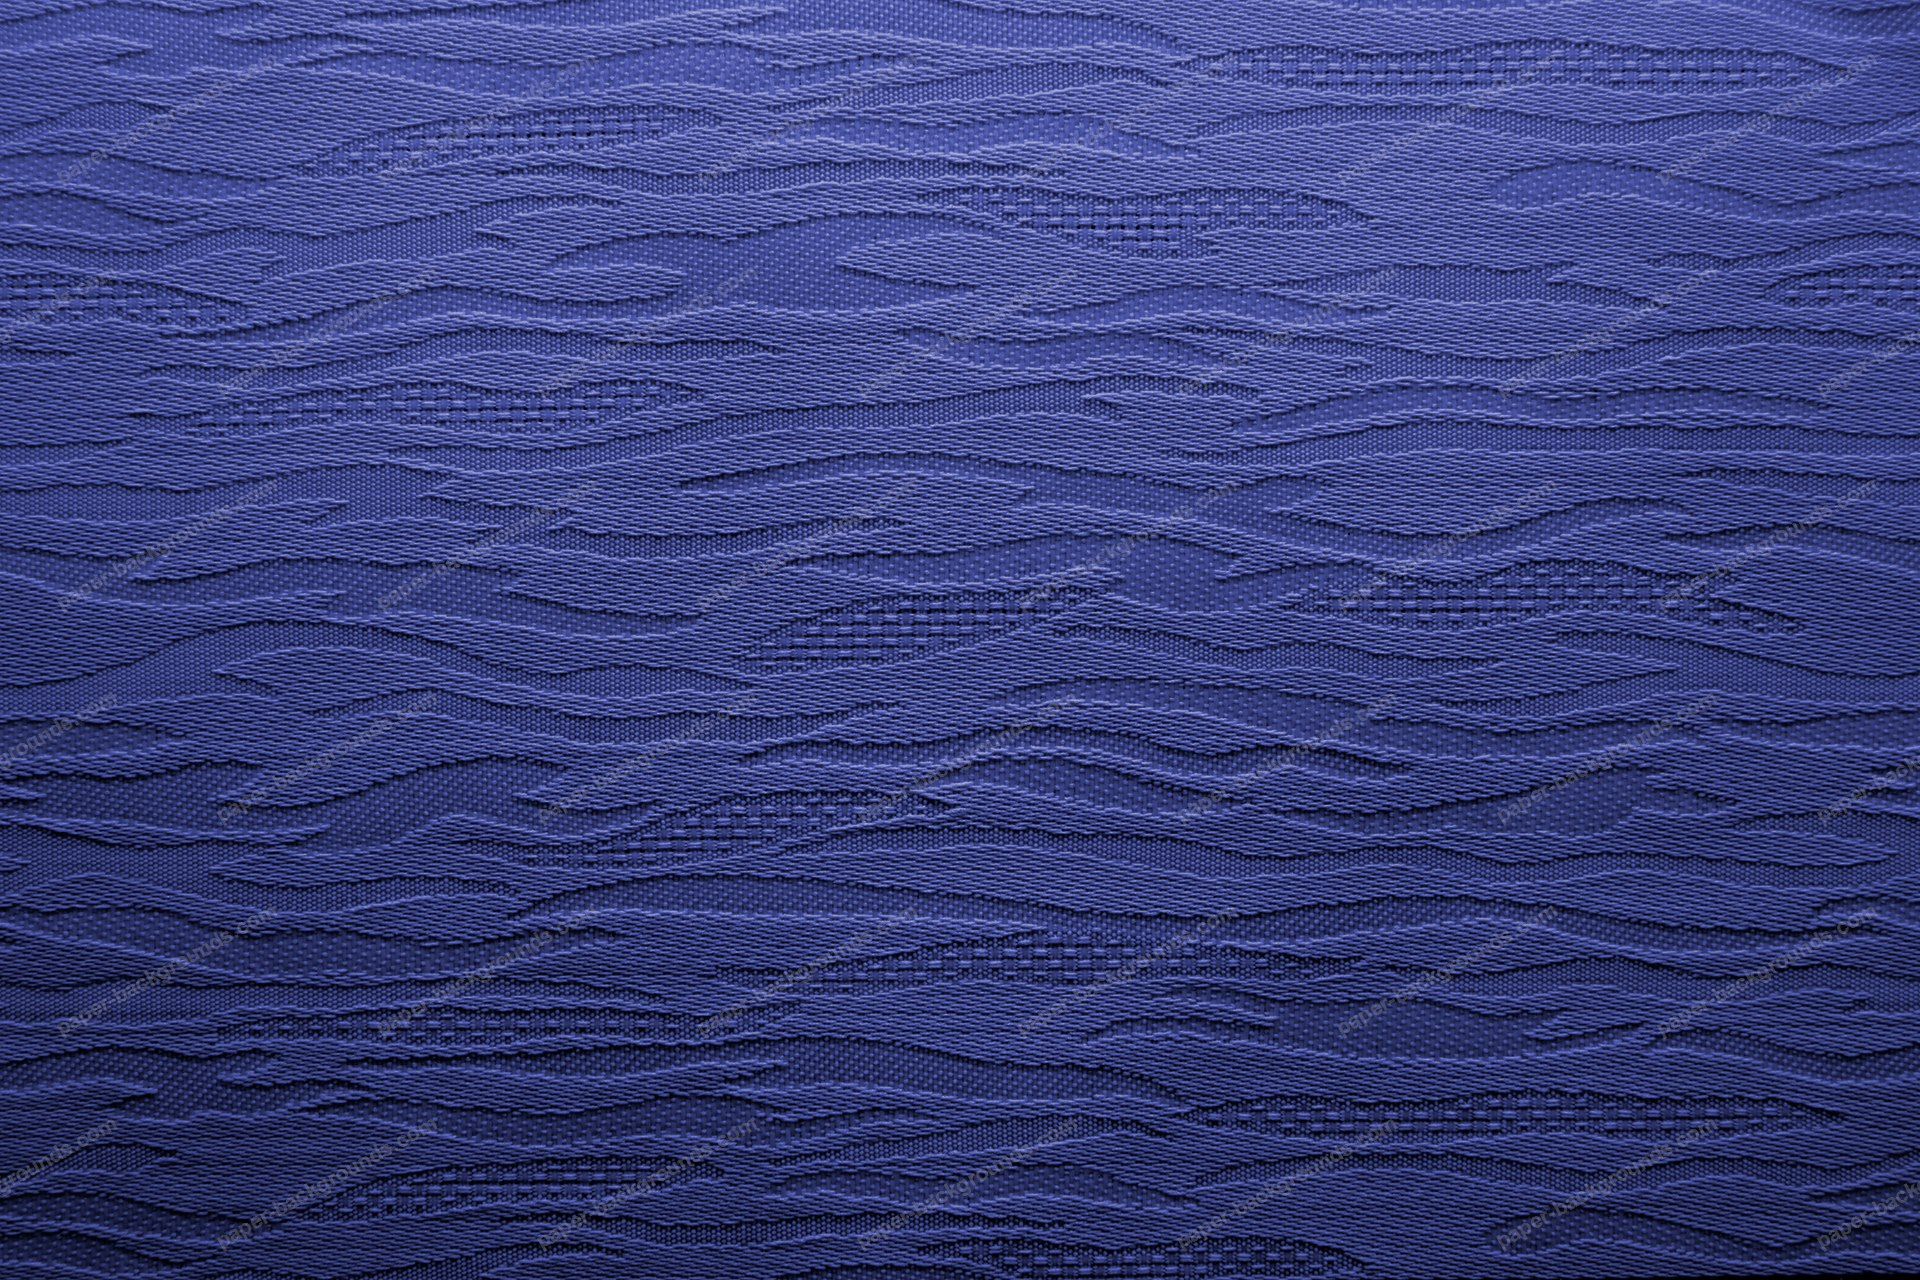 Blue Canvas Background With Waves HD 1920 x 1080p